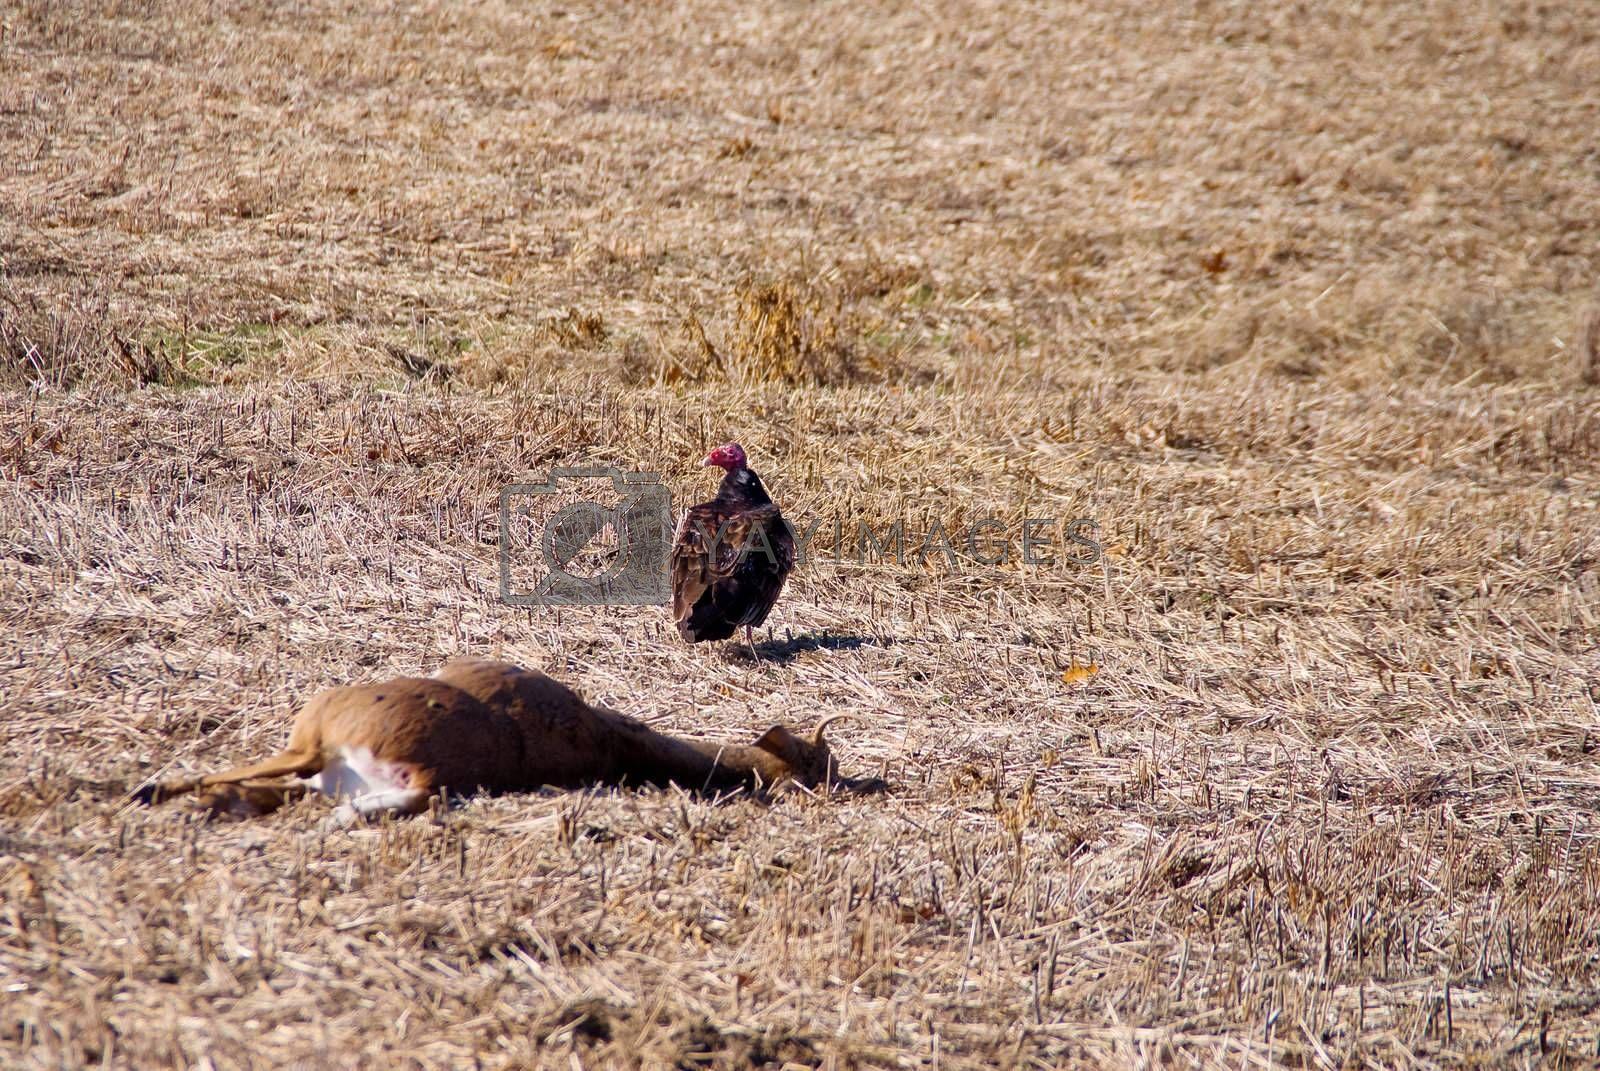 A Turkey Buzzard getting ready to have a snack.